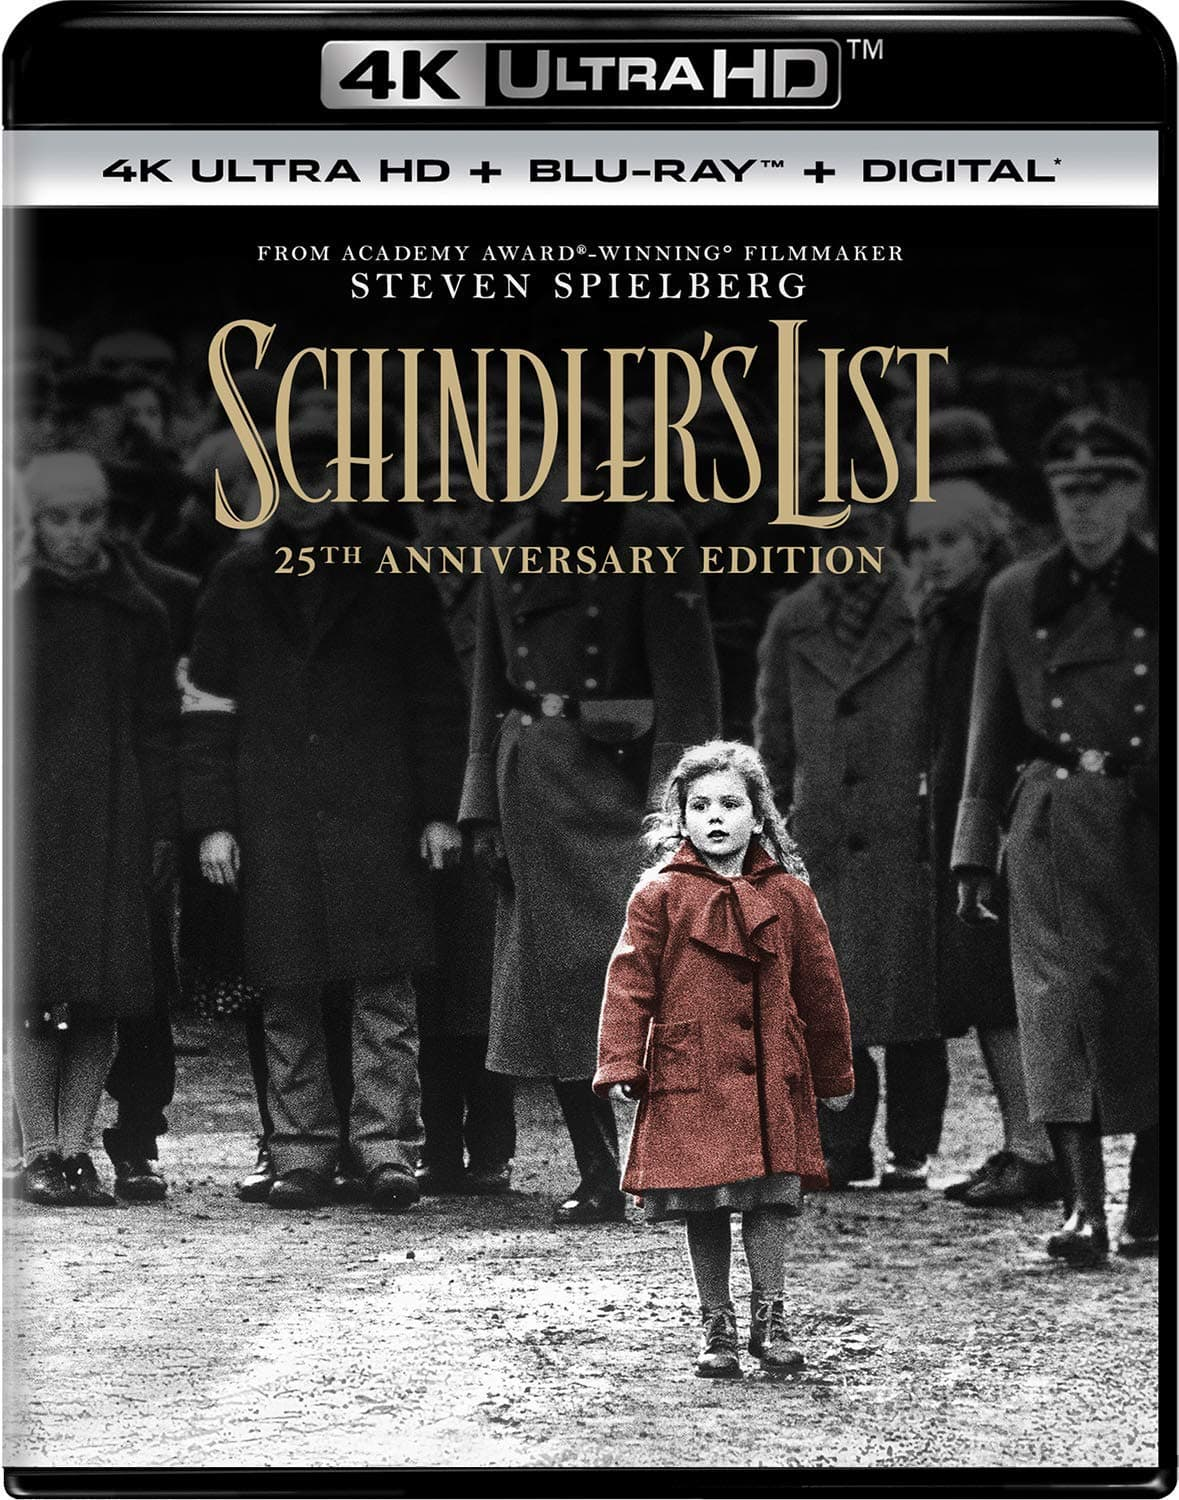 Amazon: 3 x $39.99 4K Movies: Schindler's List, How to Train Your Dragon, The Bridge on the River Kwai: 60th Anniversary, Cliffhanger & More + Free Shipping